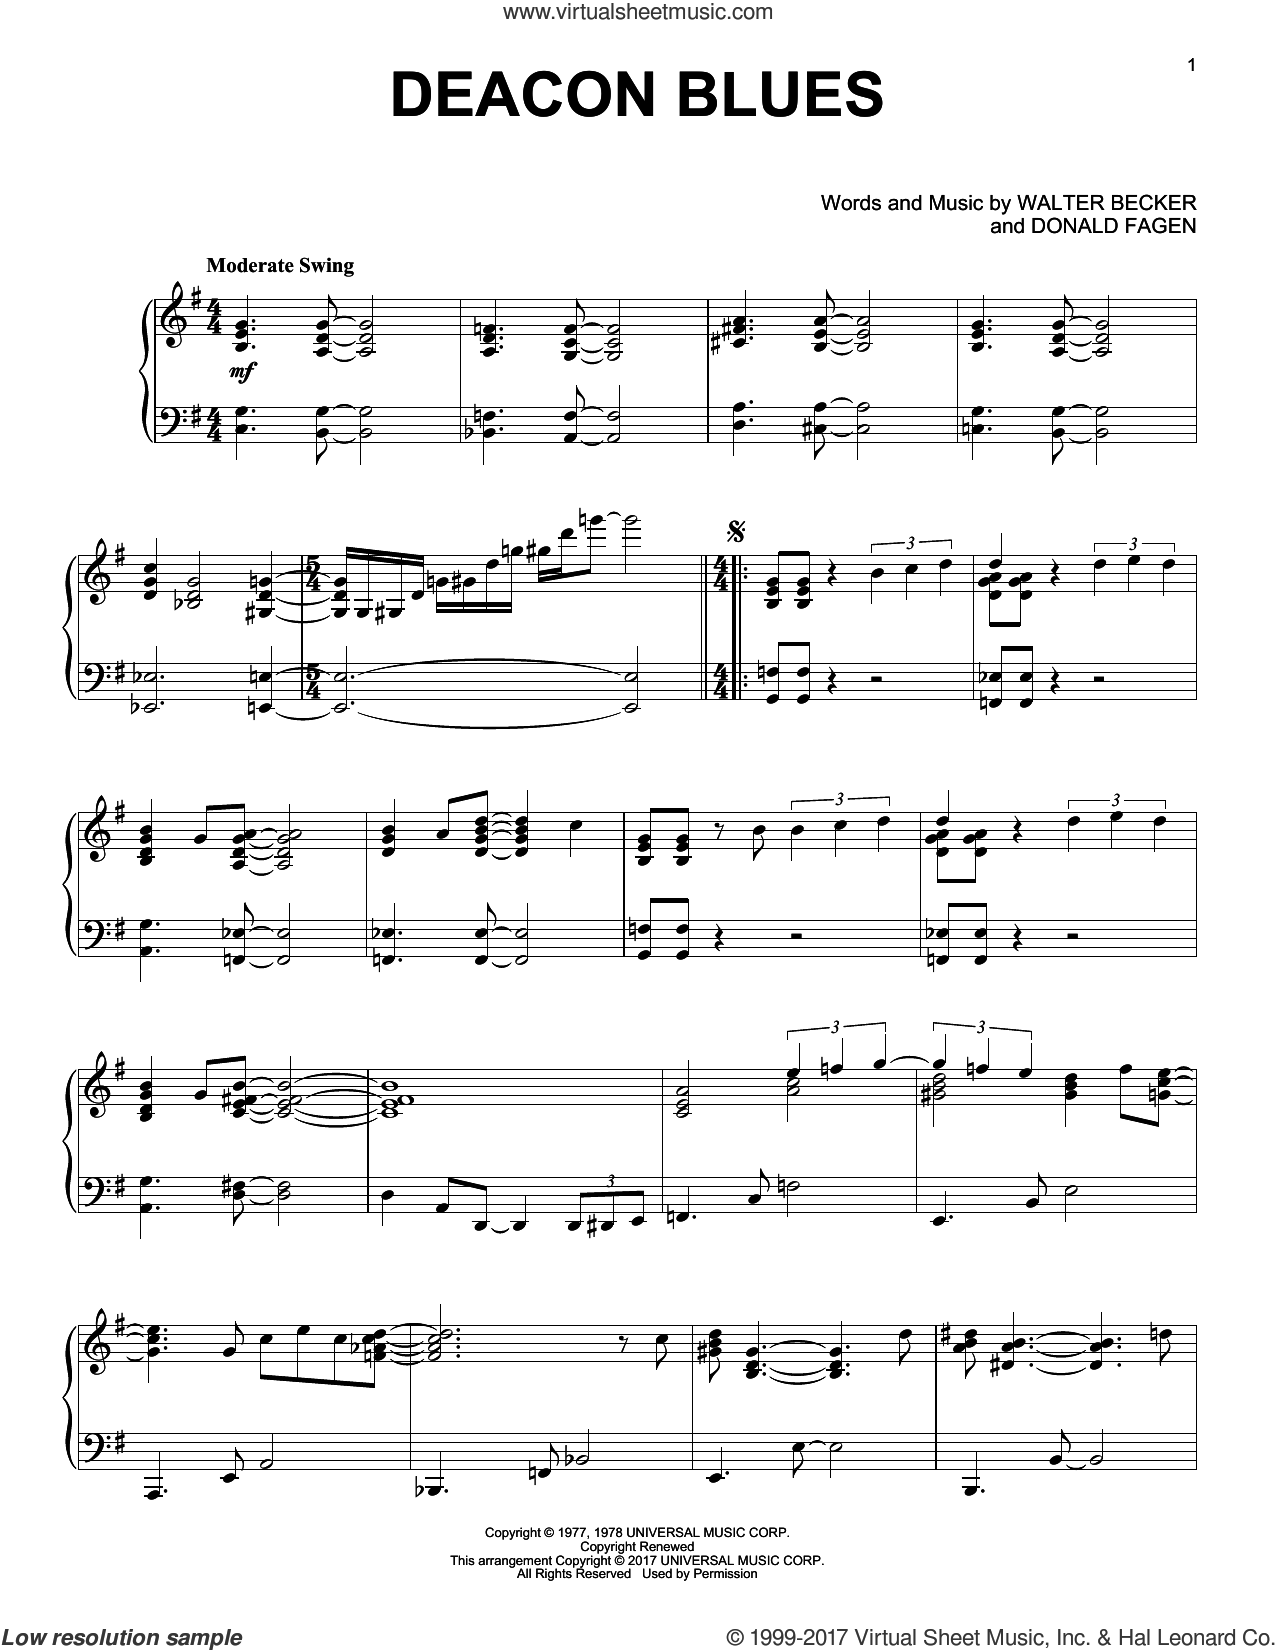 Deacon Blues sheet music for piano solo by Steely Dan, Donald Fagen and Walter Becker, intermediate skill level